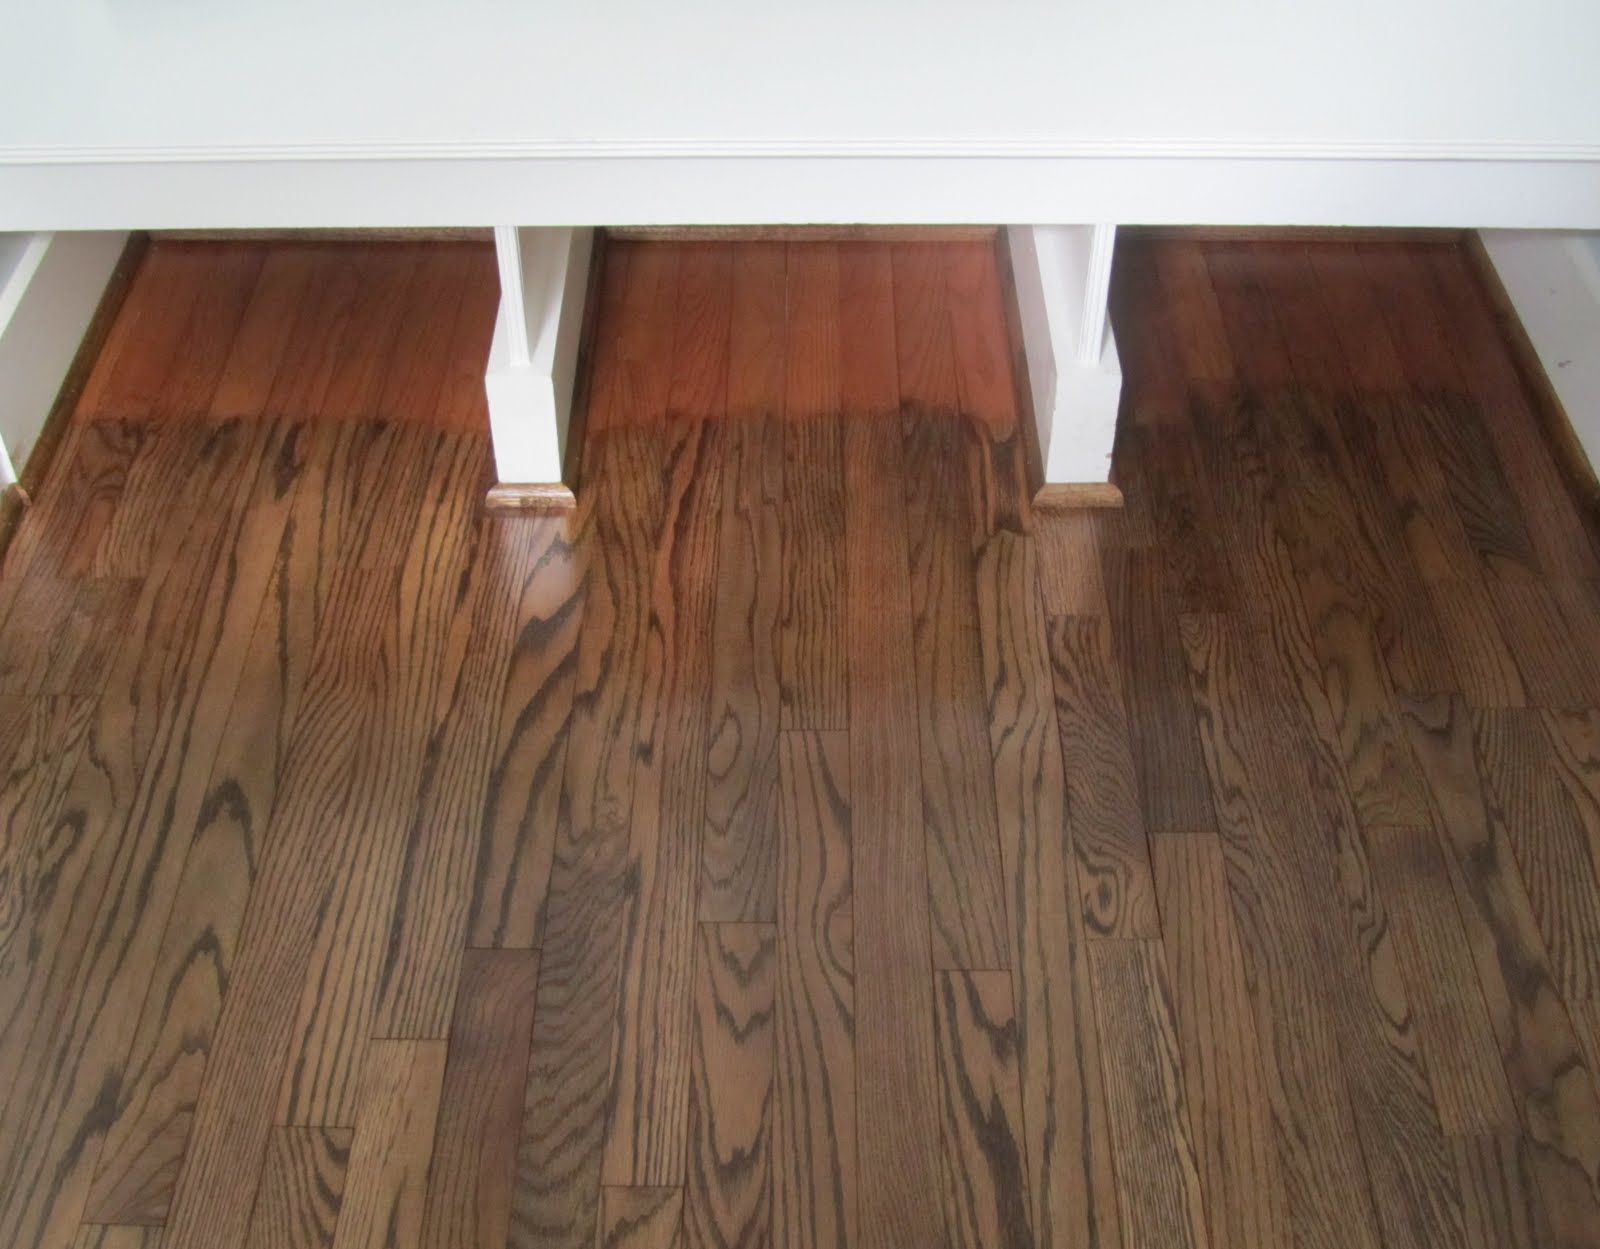 Acanthus and acorn the process of refinishing hardwood for Color of hardwood floors